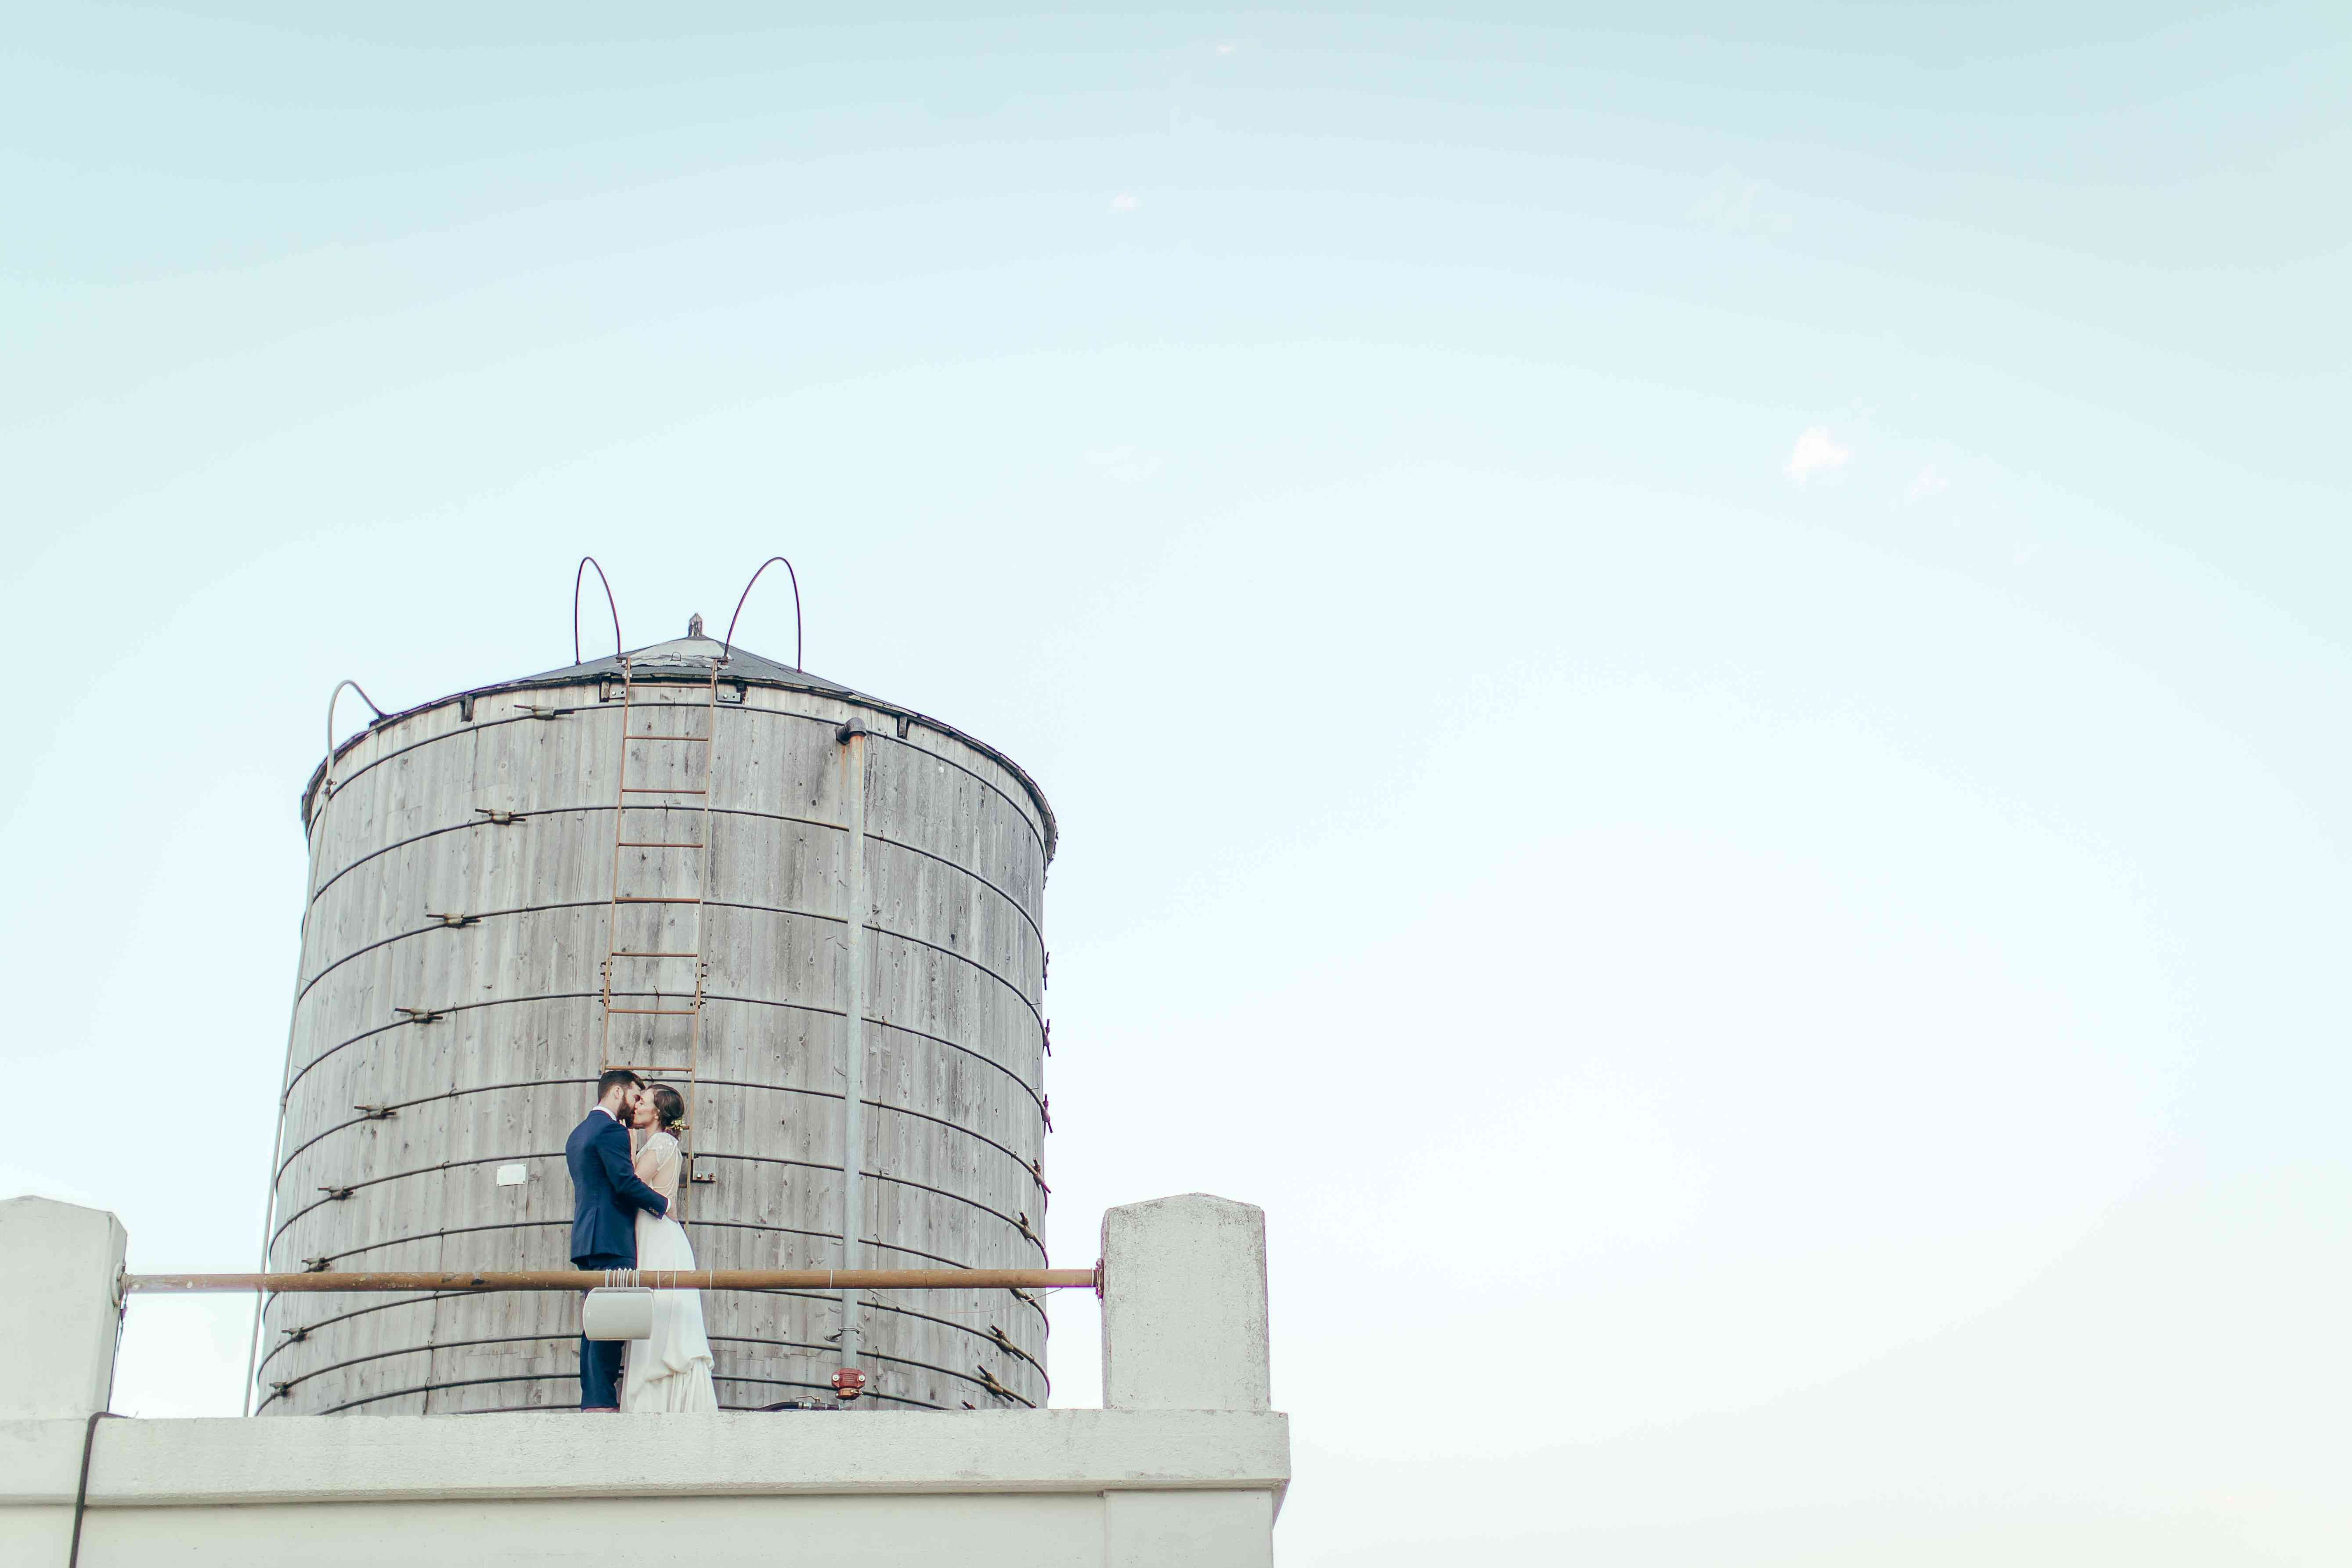 Bride and groom kissing near water tower